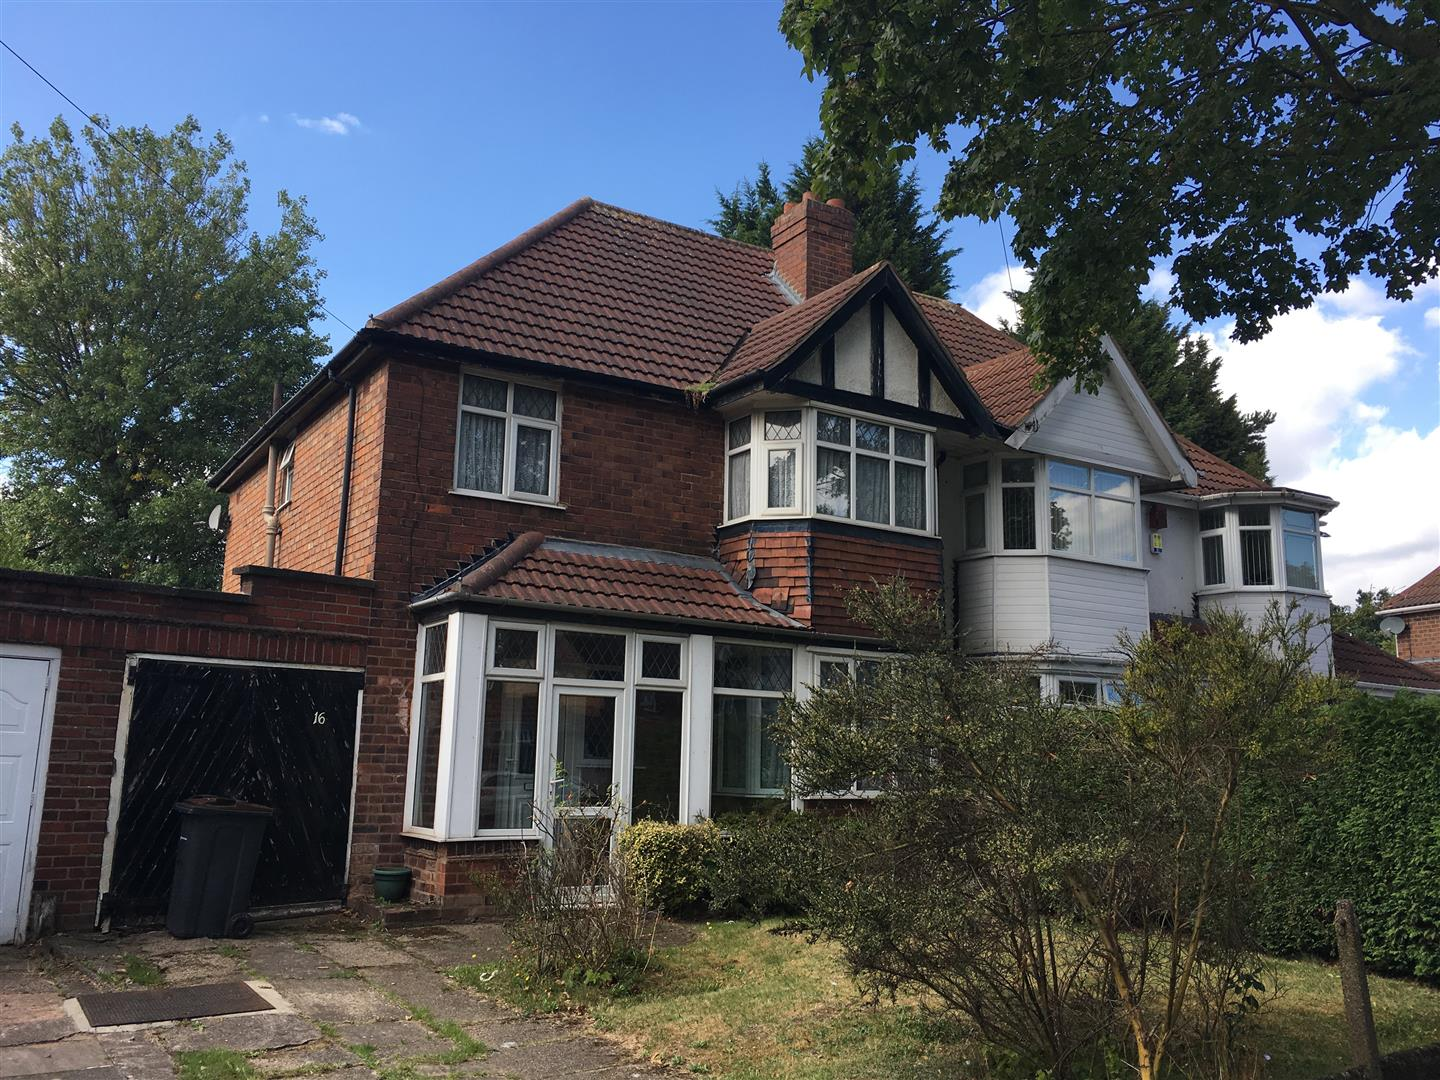 3 bed house for sale in Plaistow Avenue, Hodge Hill, Birmingham, B36